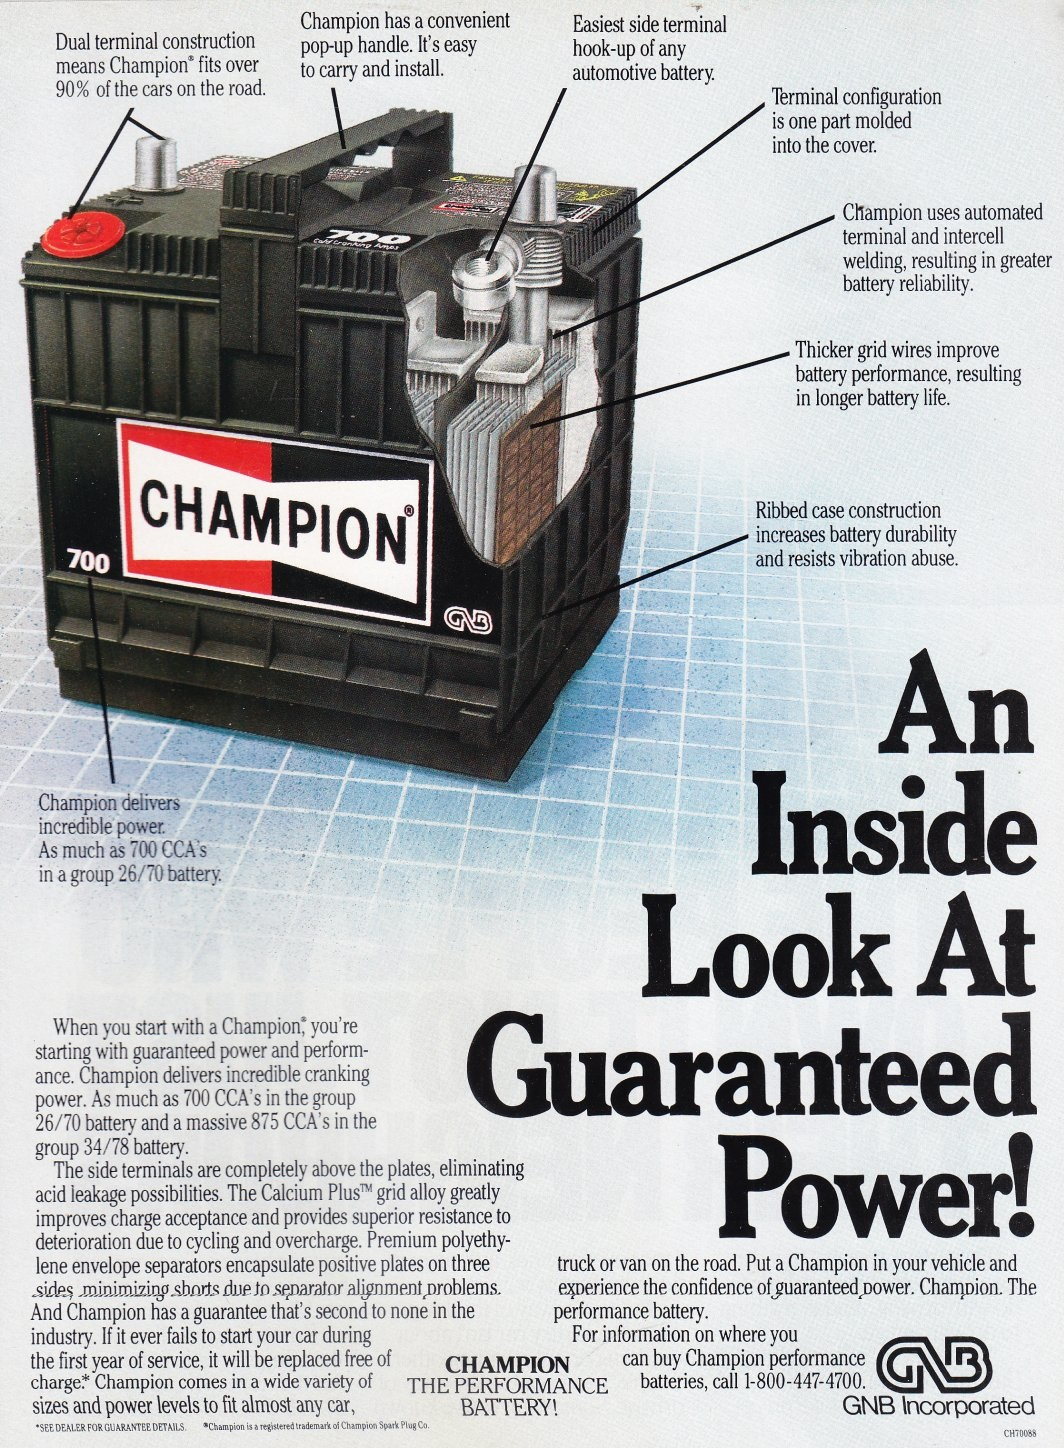 1995 champion battery made by gnb